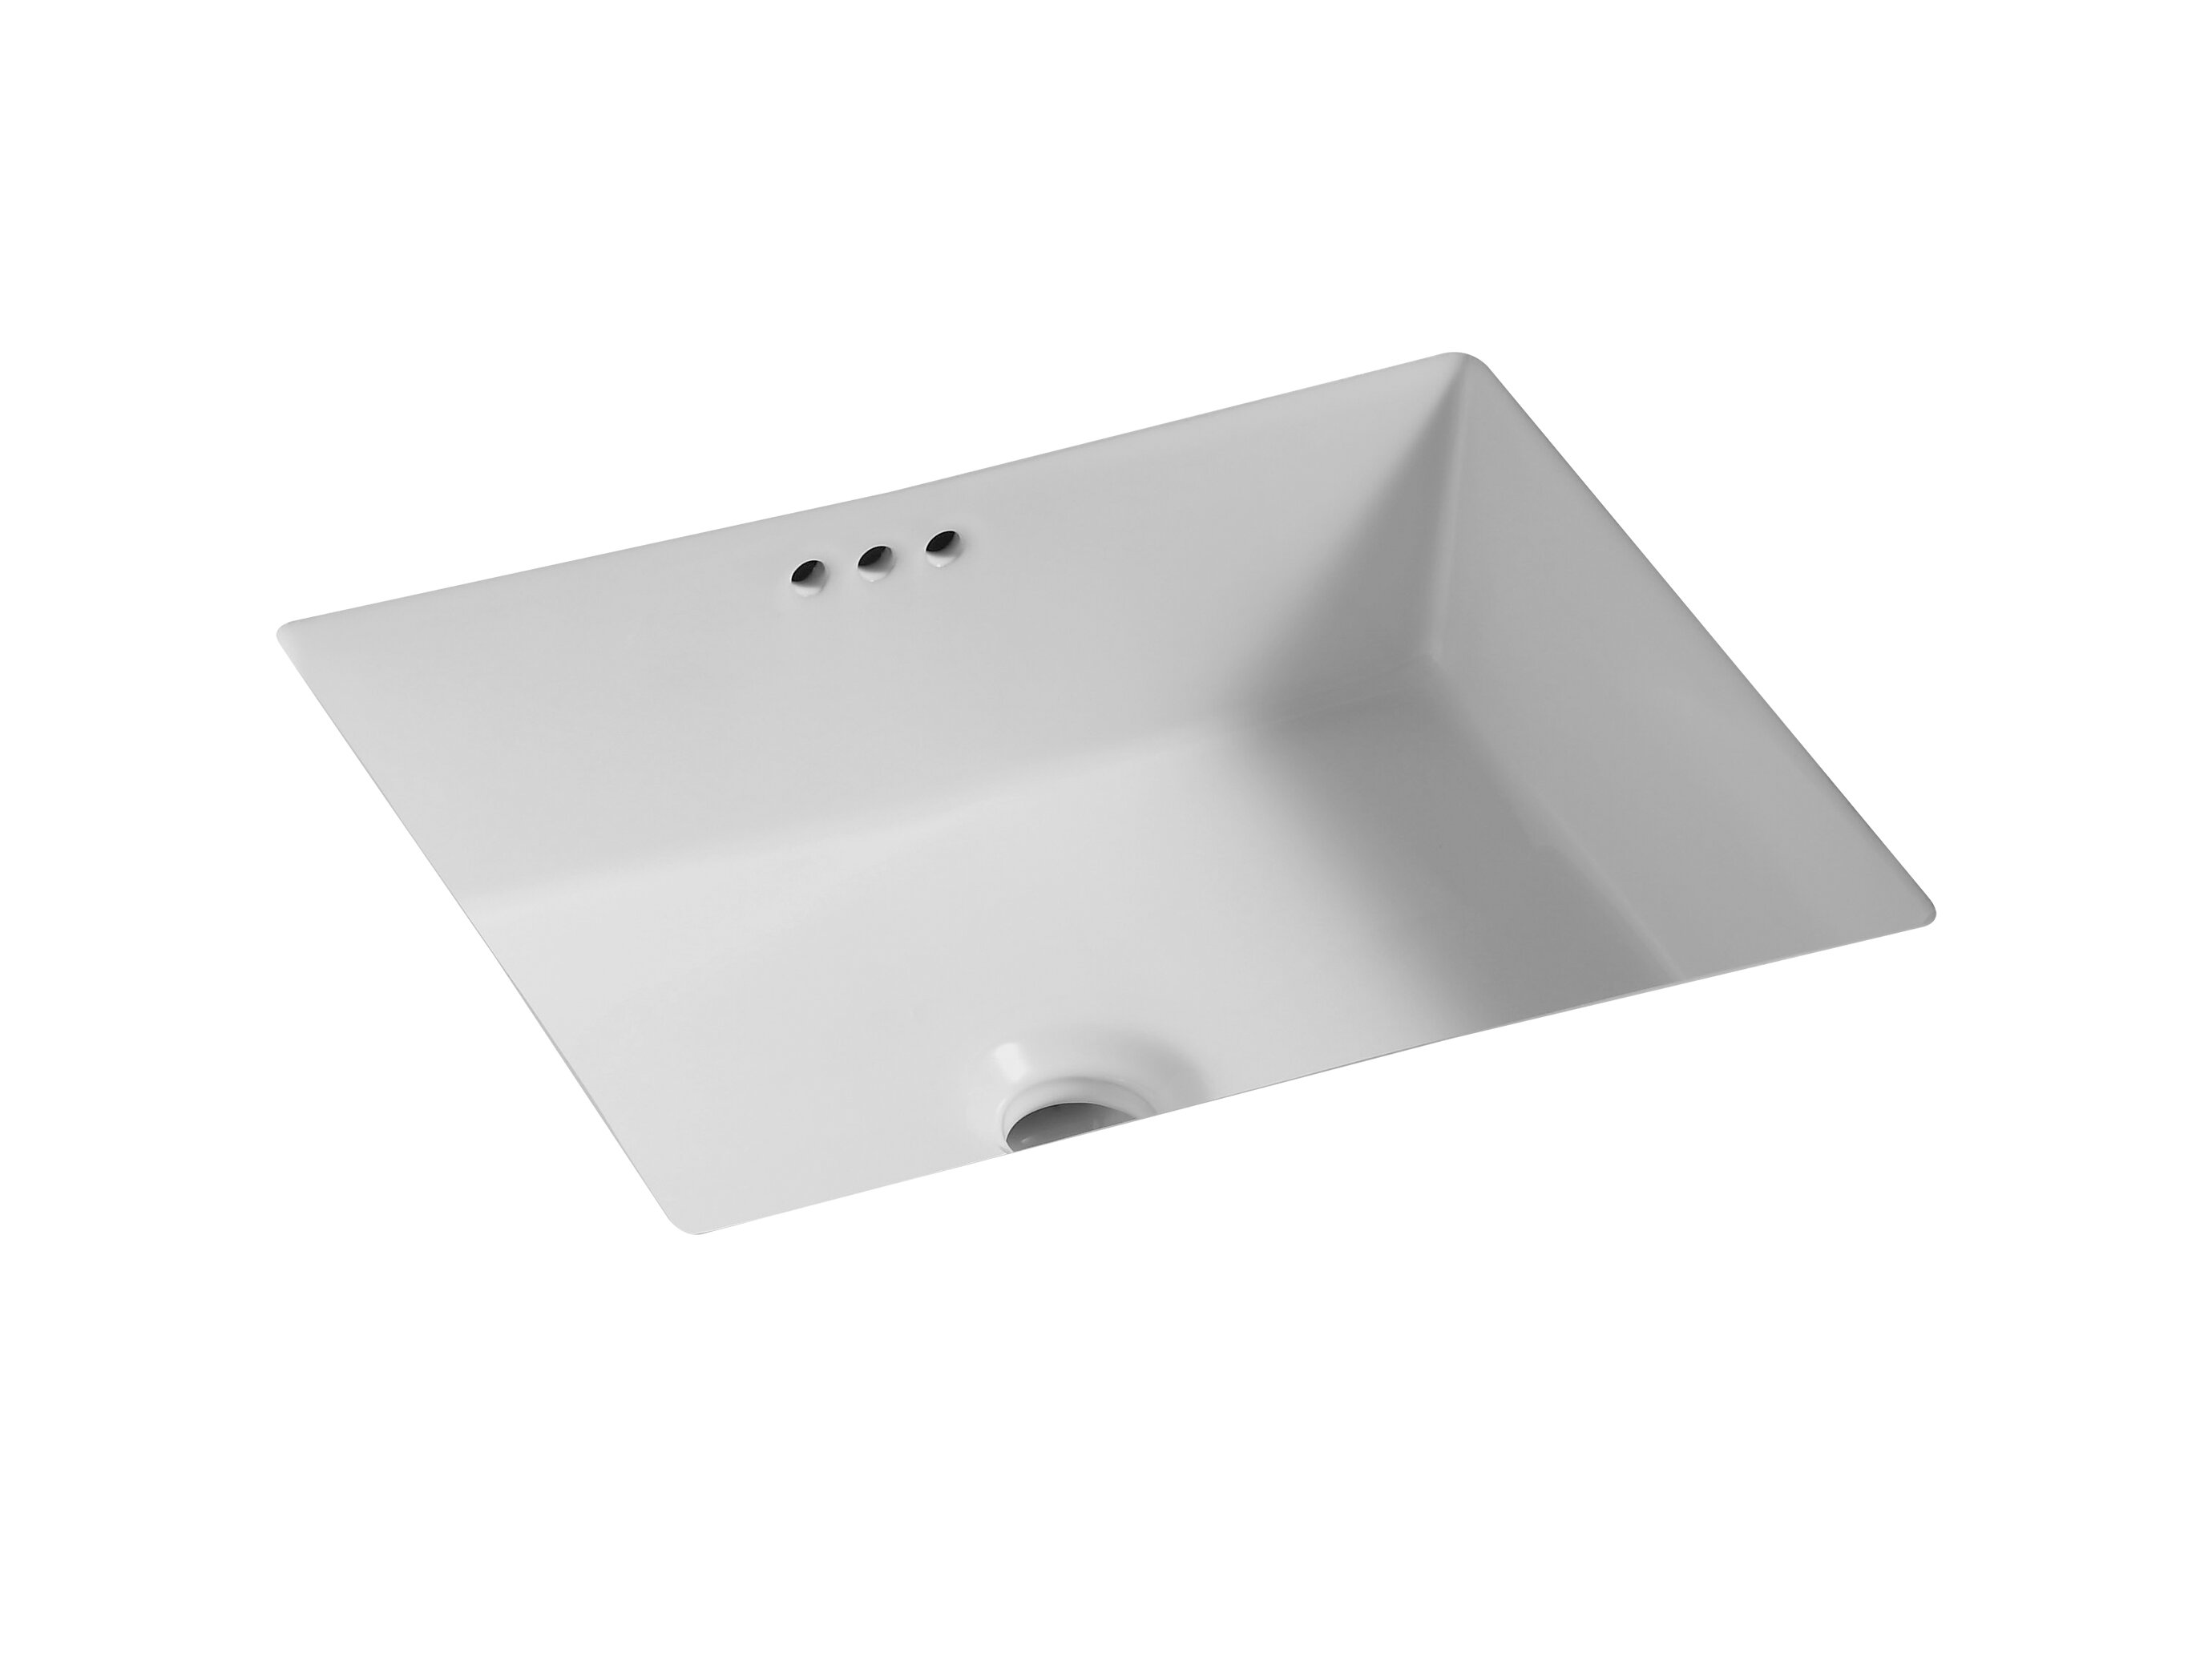 Valley Acrylic Ltd Vitreous China Ceramic Rectangular Undermount Bathroom Sink And Overflow Wayfair